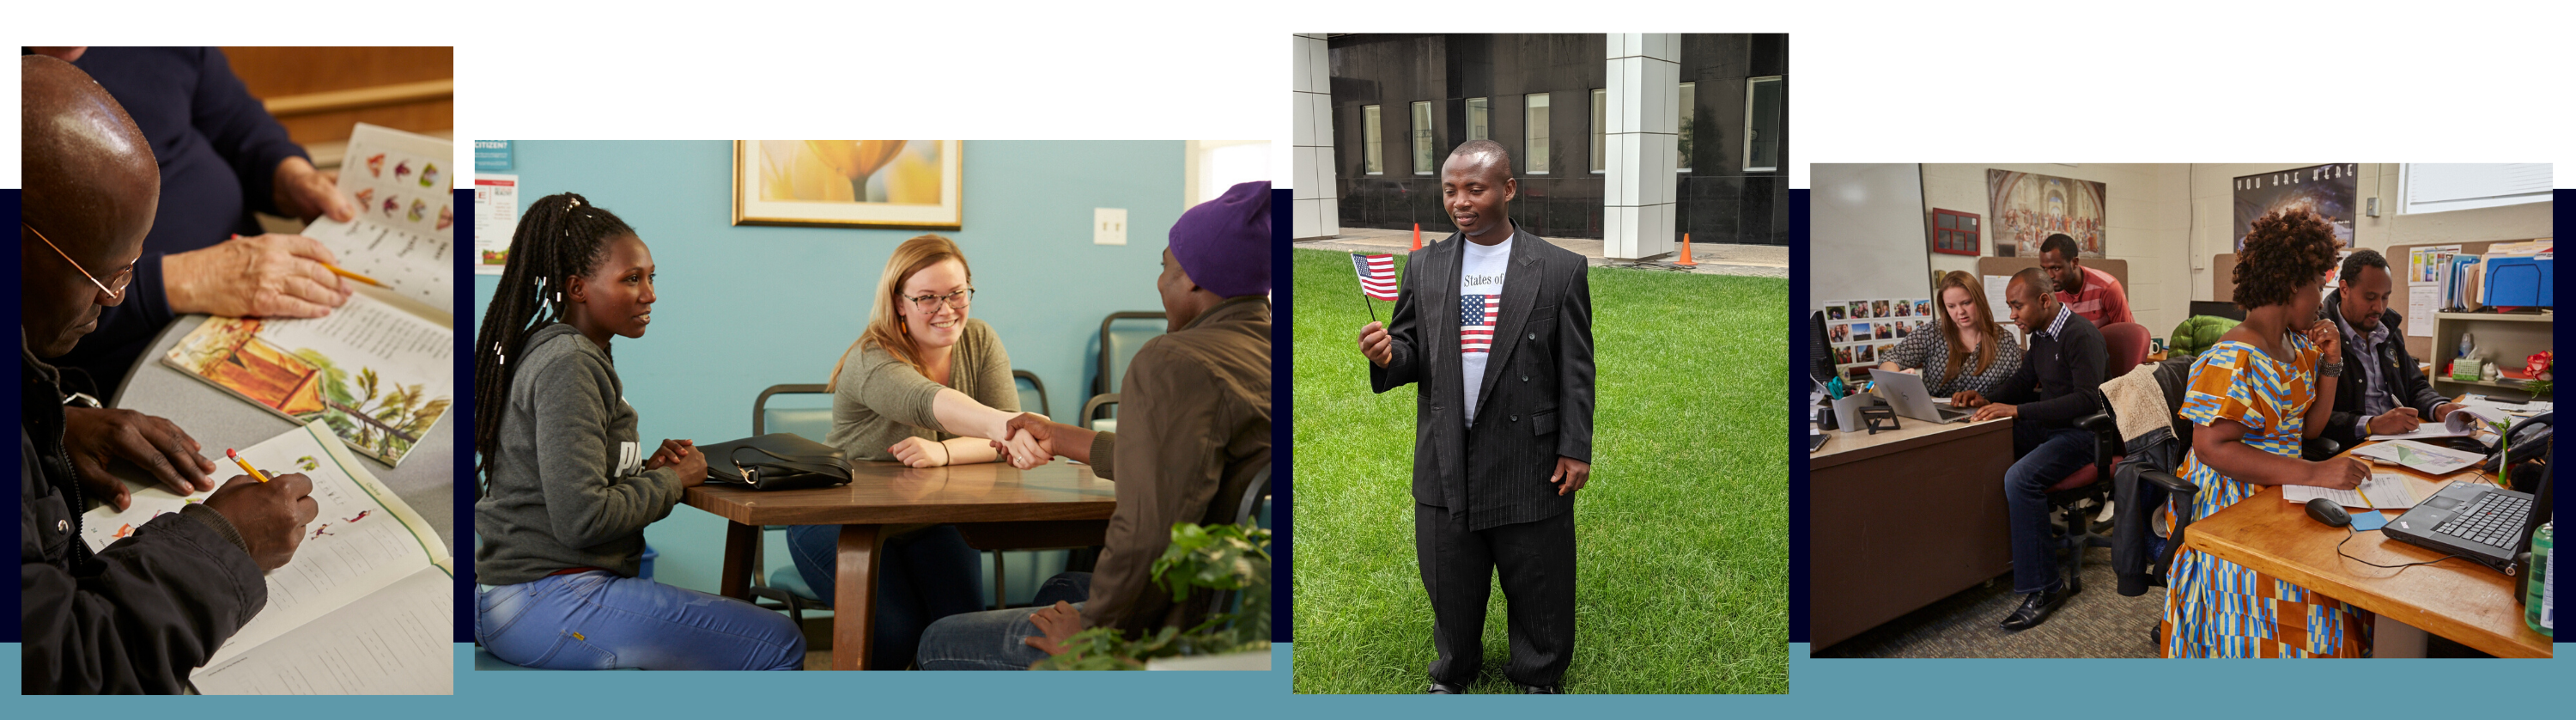 Header for Refugee and Immigrant Services. Man studying, man holding flag, people working at computers, people shaking hands.